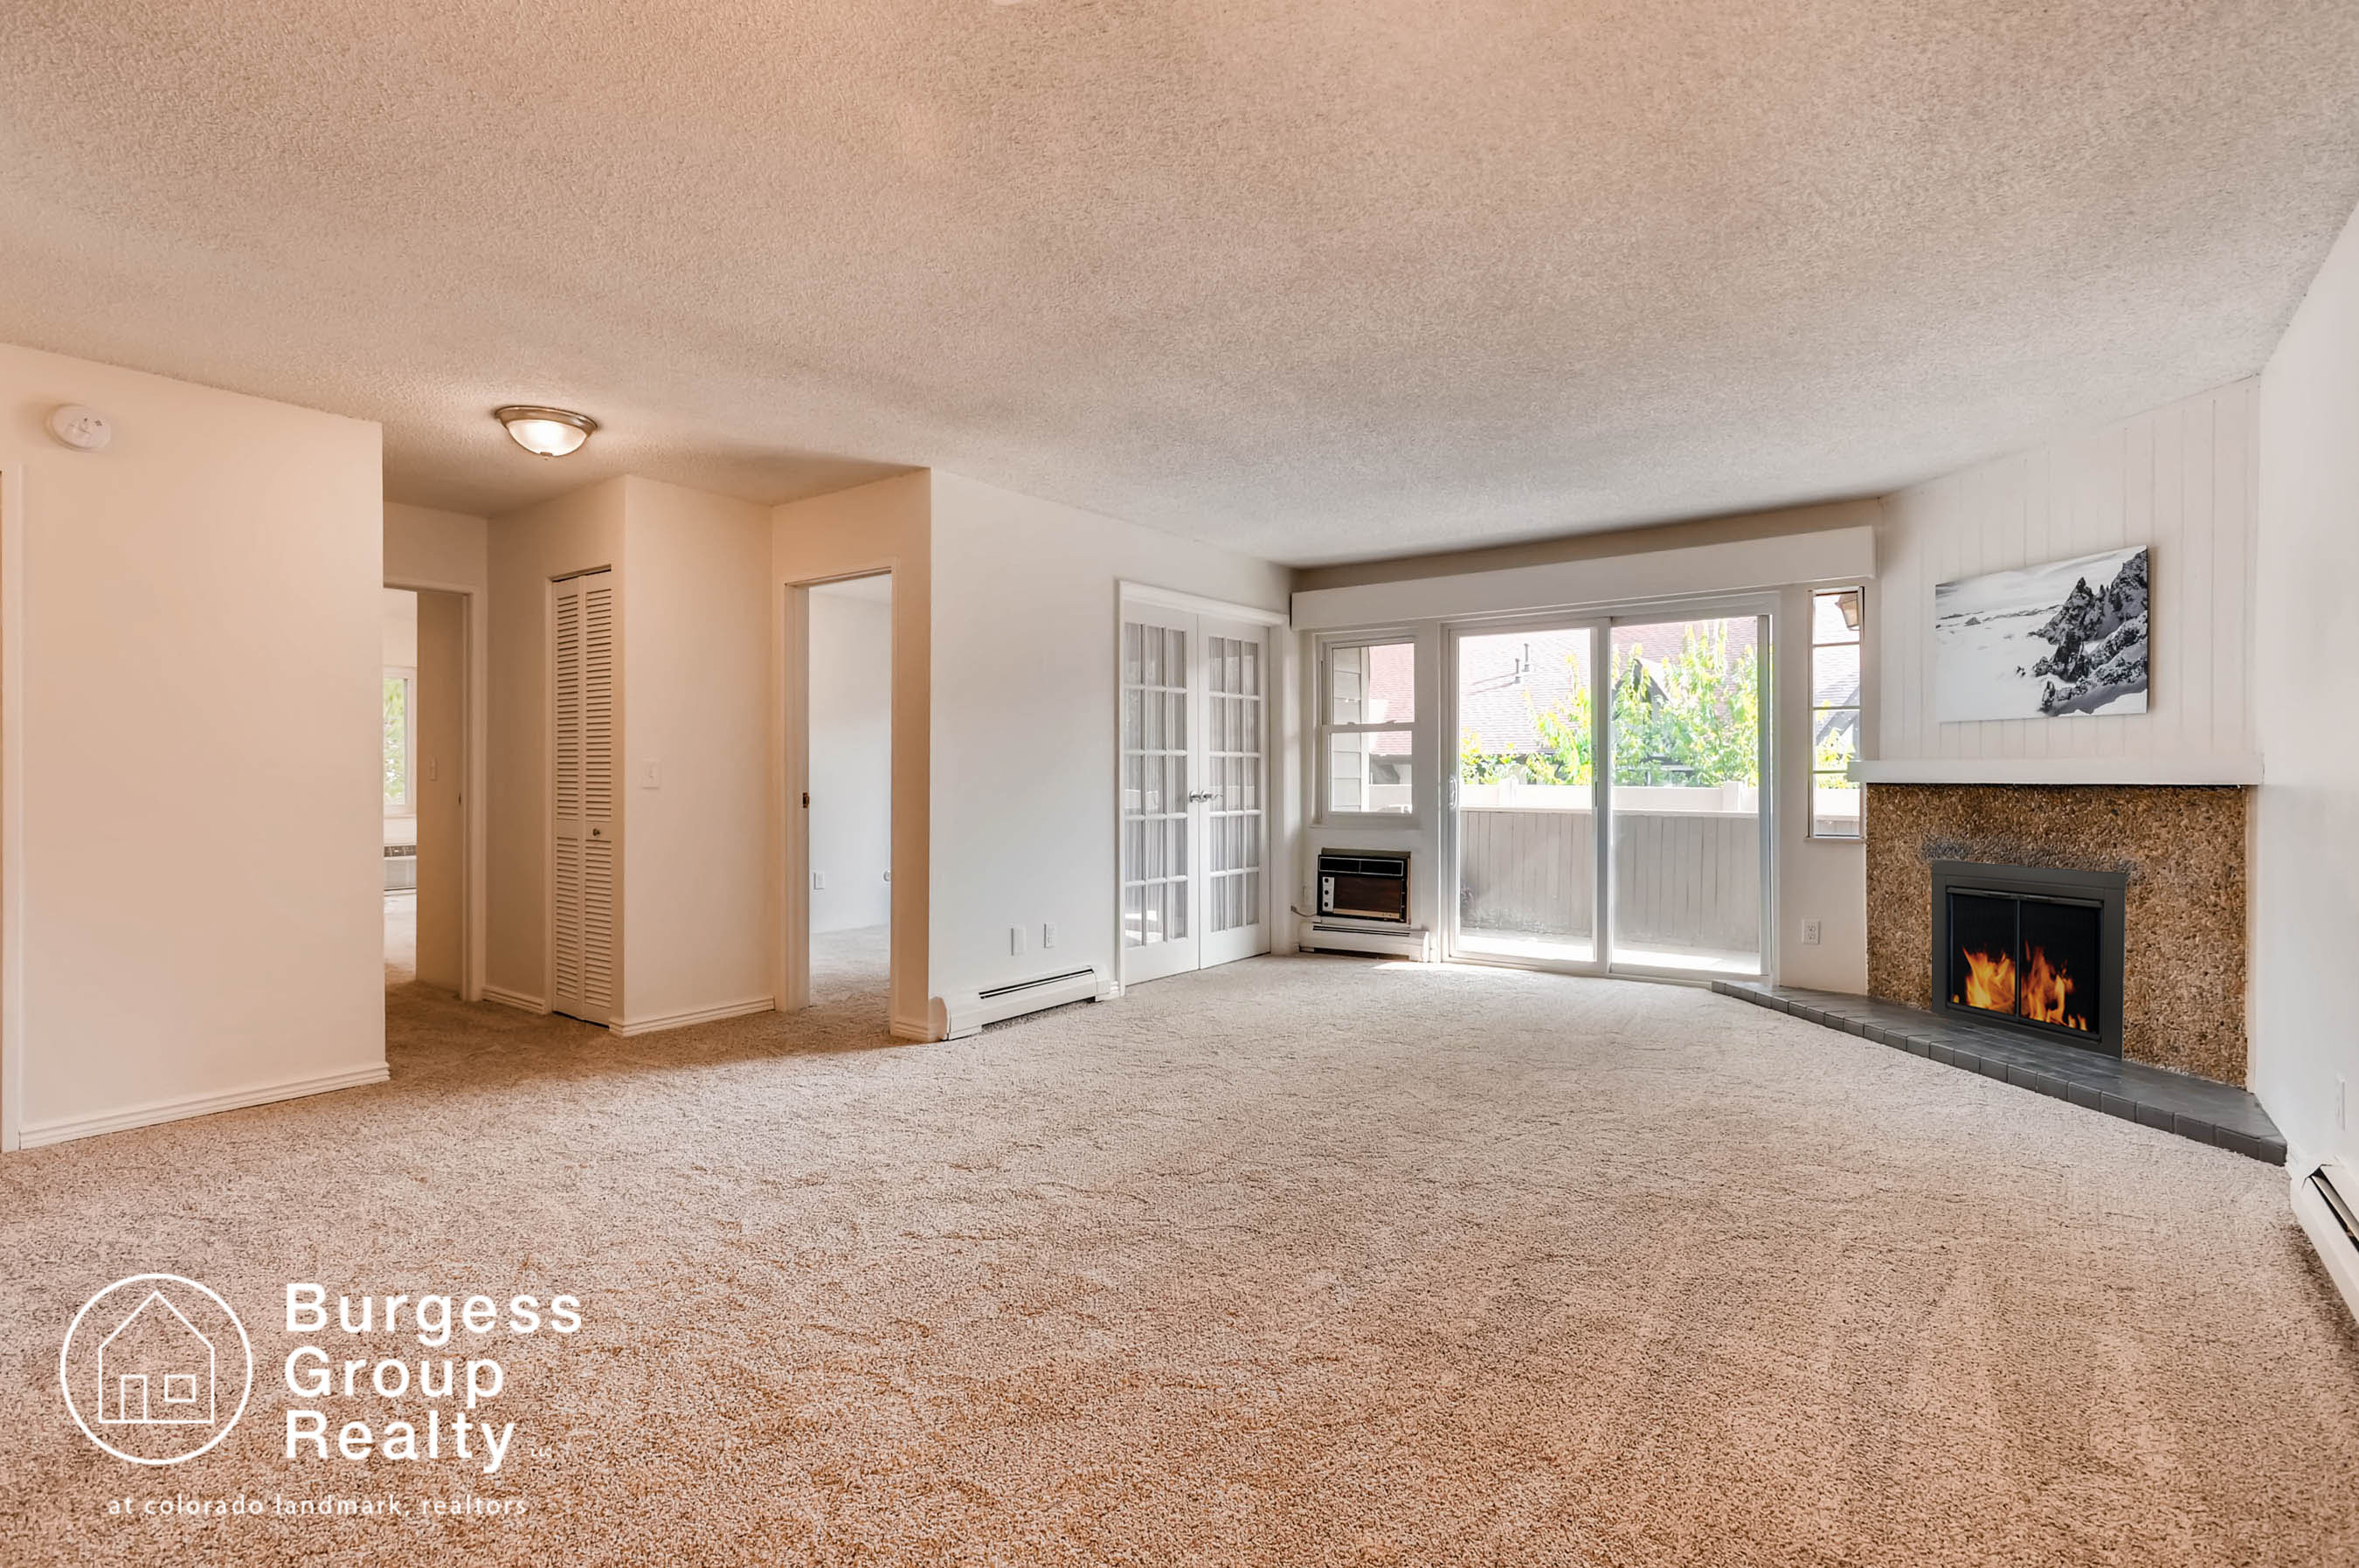 Burgess Group Realty 3120 Corona Trail #L102 Boulder Colorado